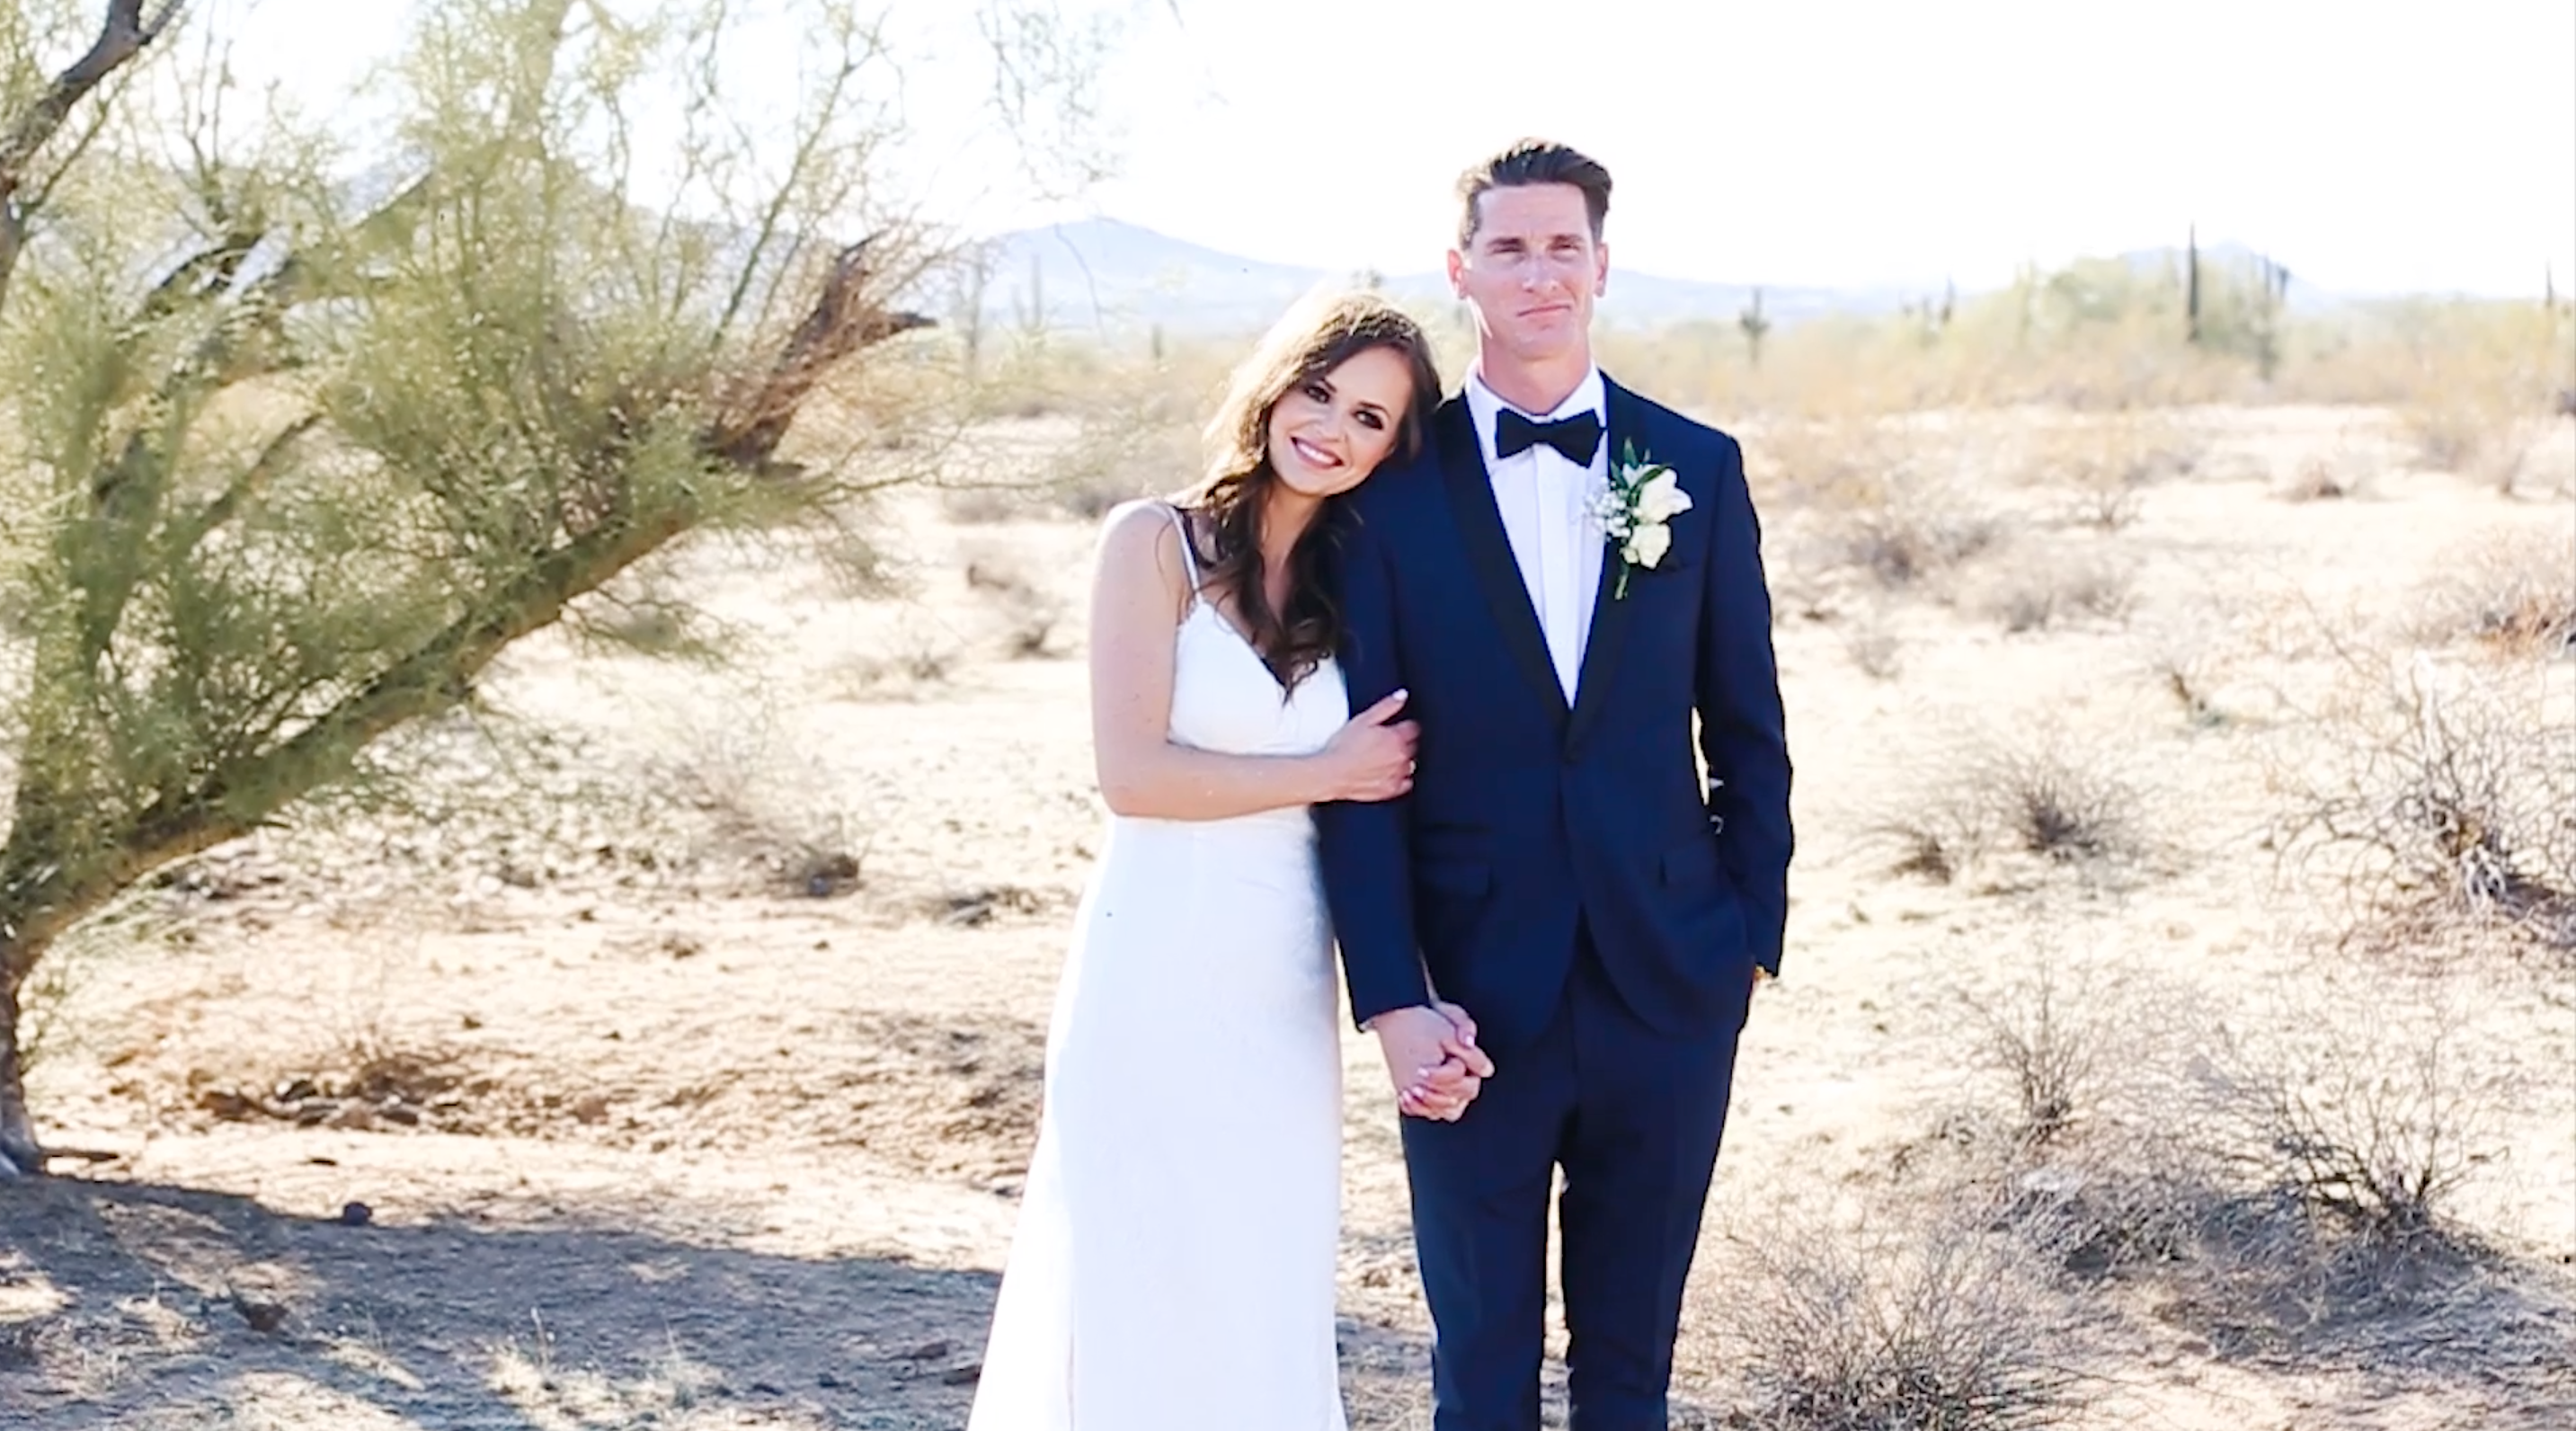 Lexi + JT | Phoenix, Arizona | Friends Home